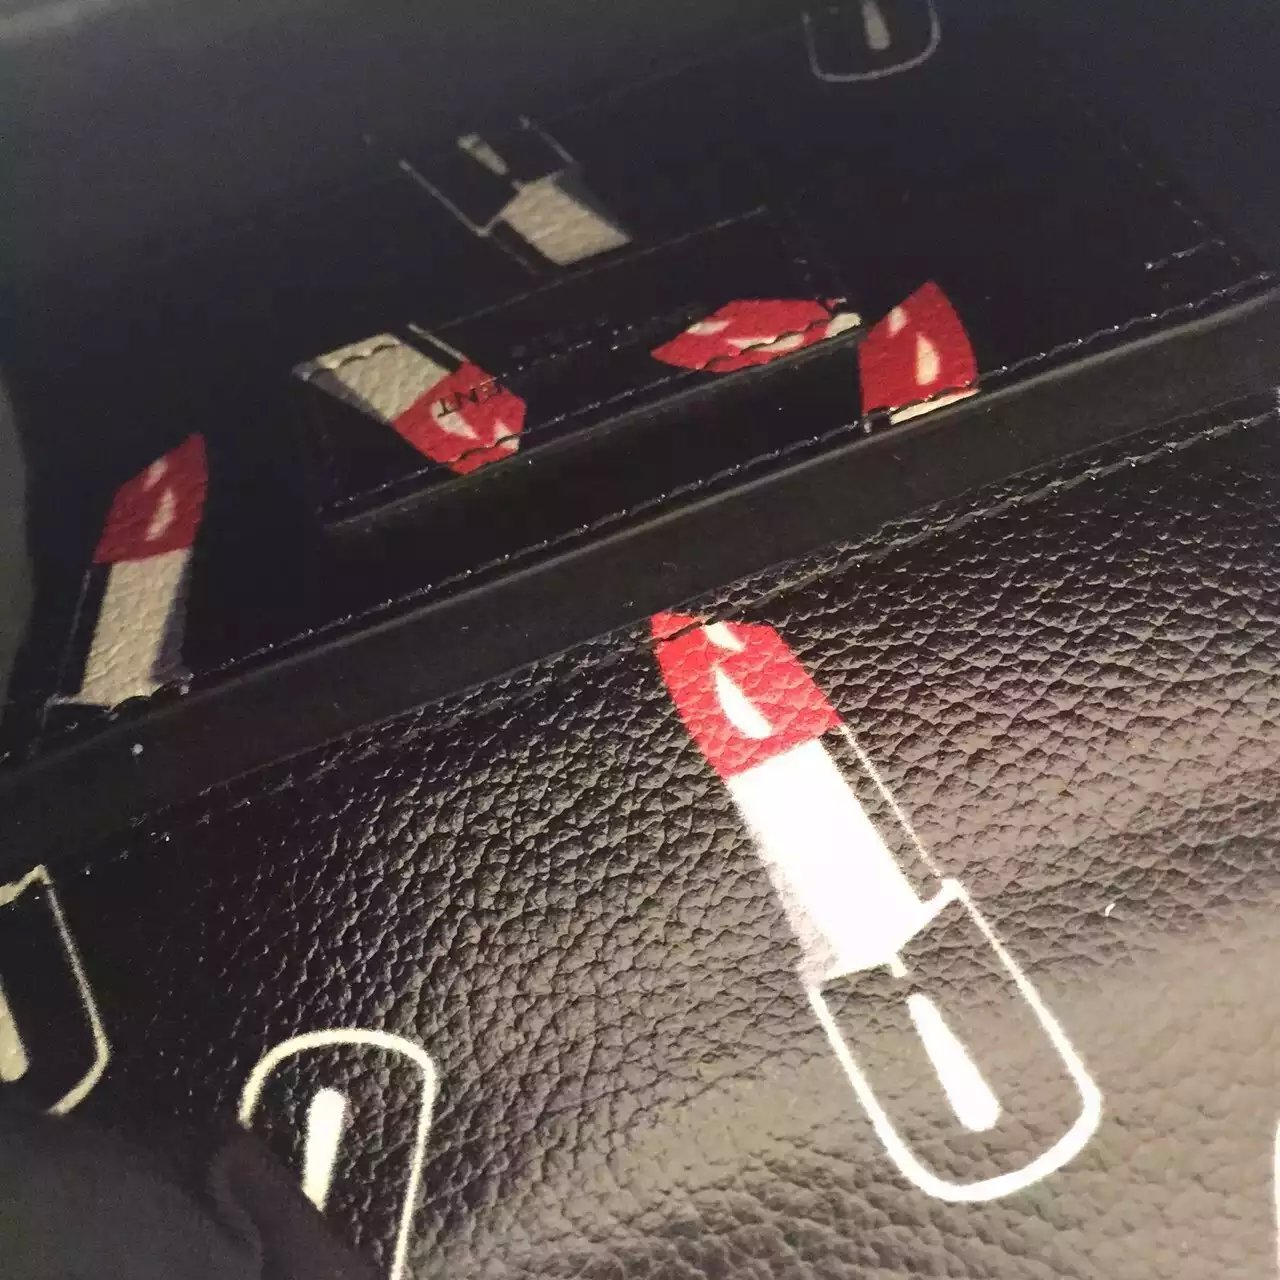 2015 New Saint Laurent Bag Cheap Sale-Saint Laurent Classic Monogram Satchel in Black,Red and White Lipstick Printed Leather